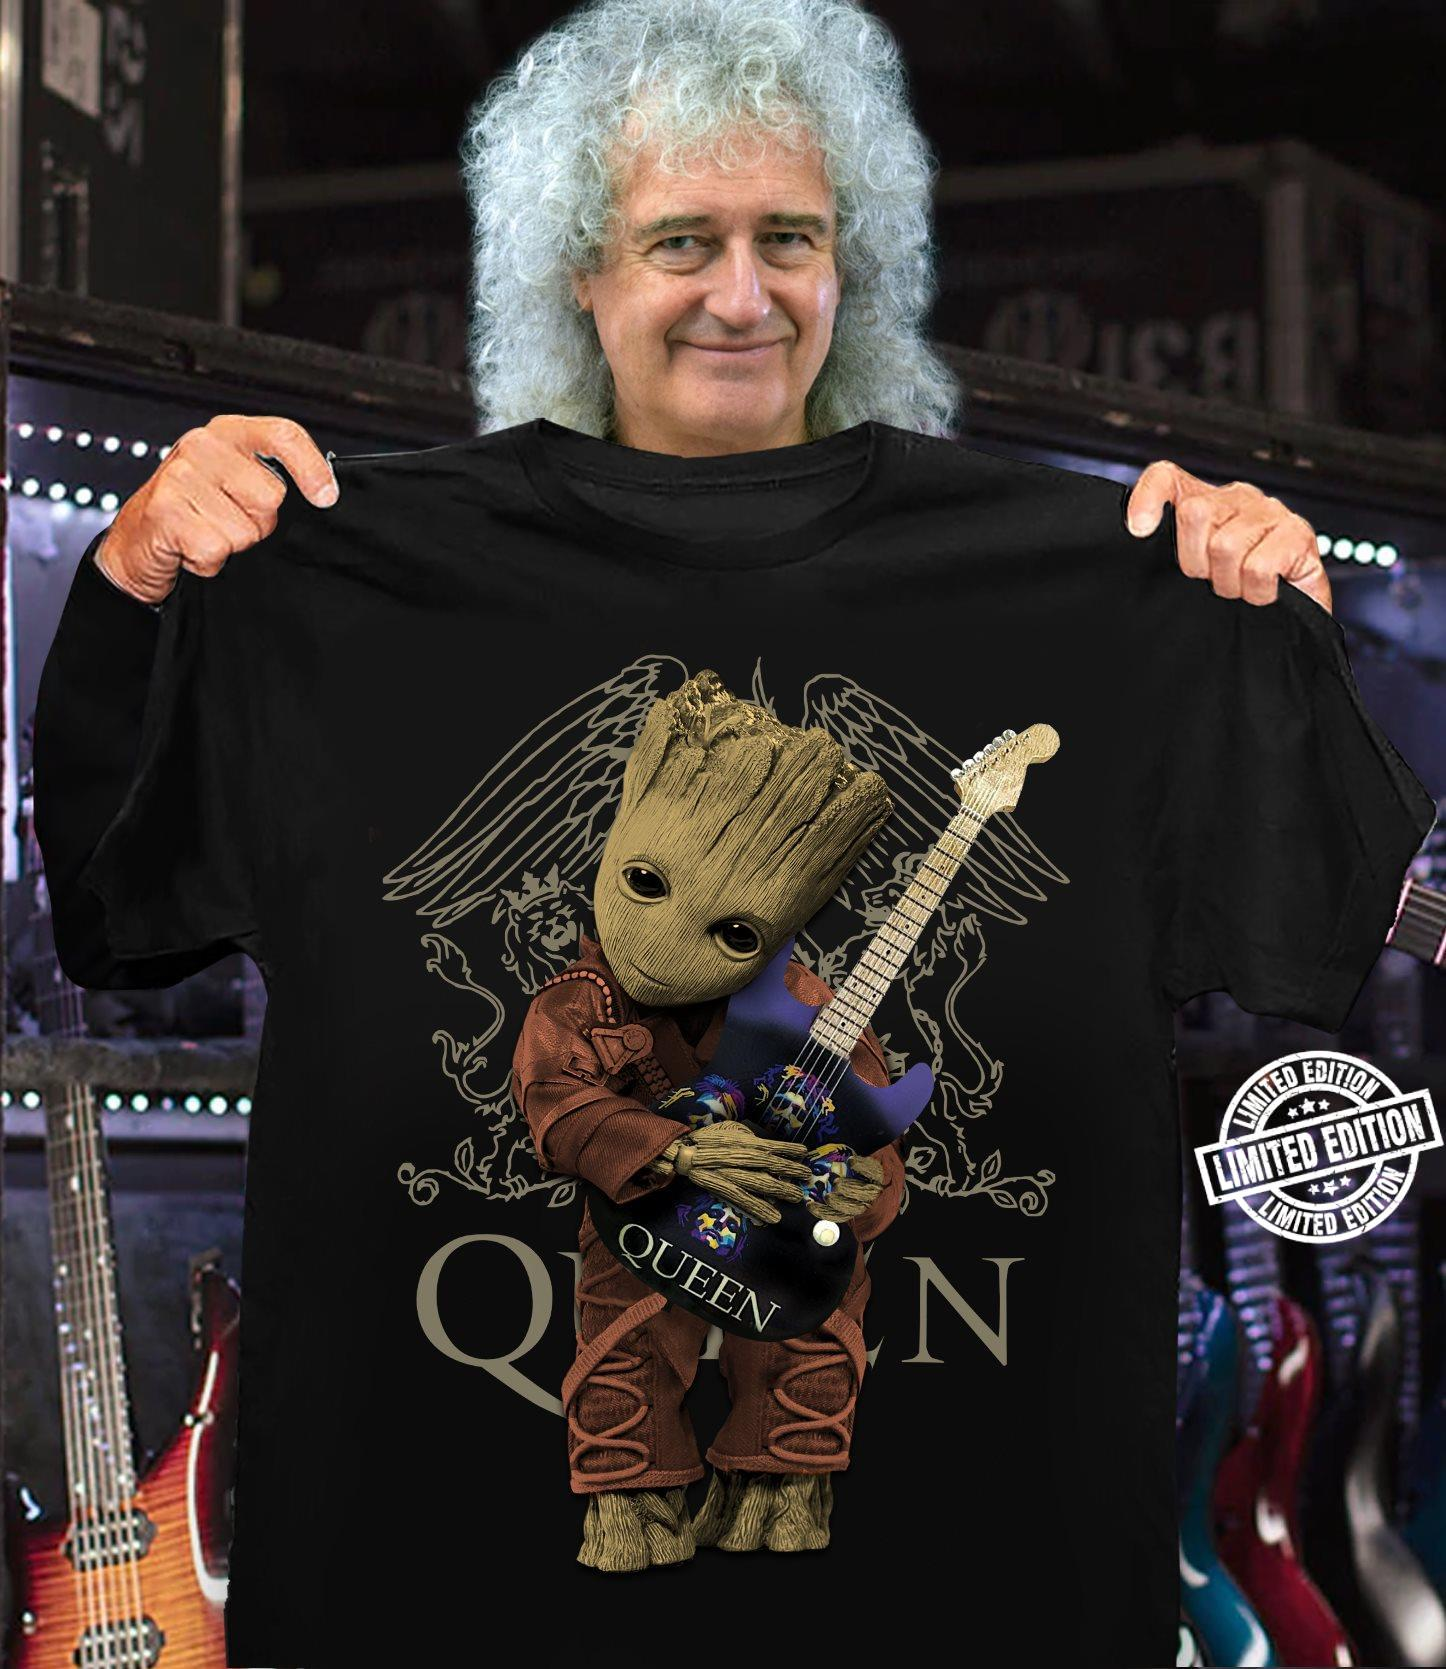 Baby Groot hug guitar queen shirt